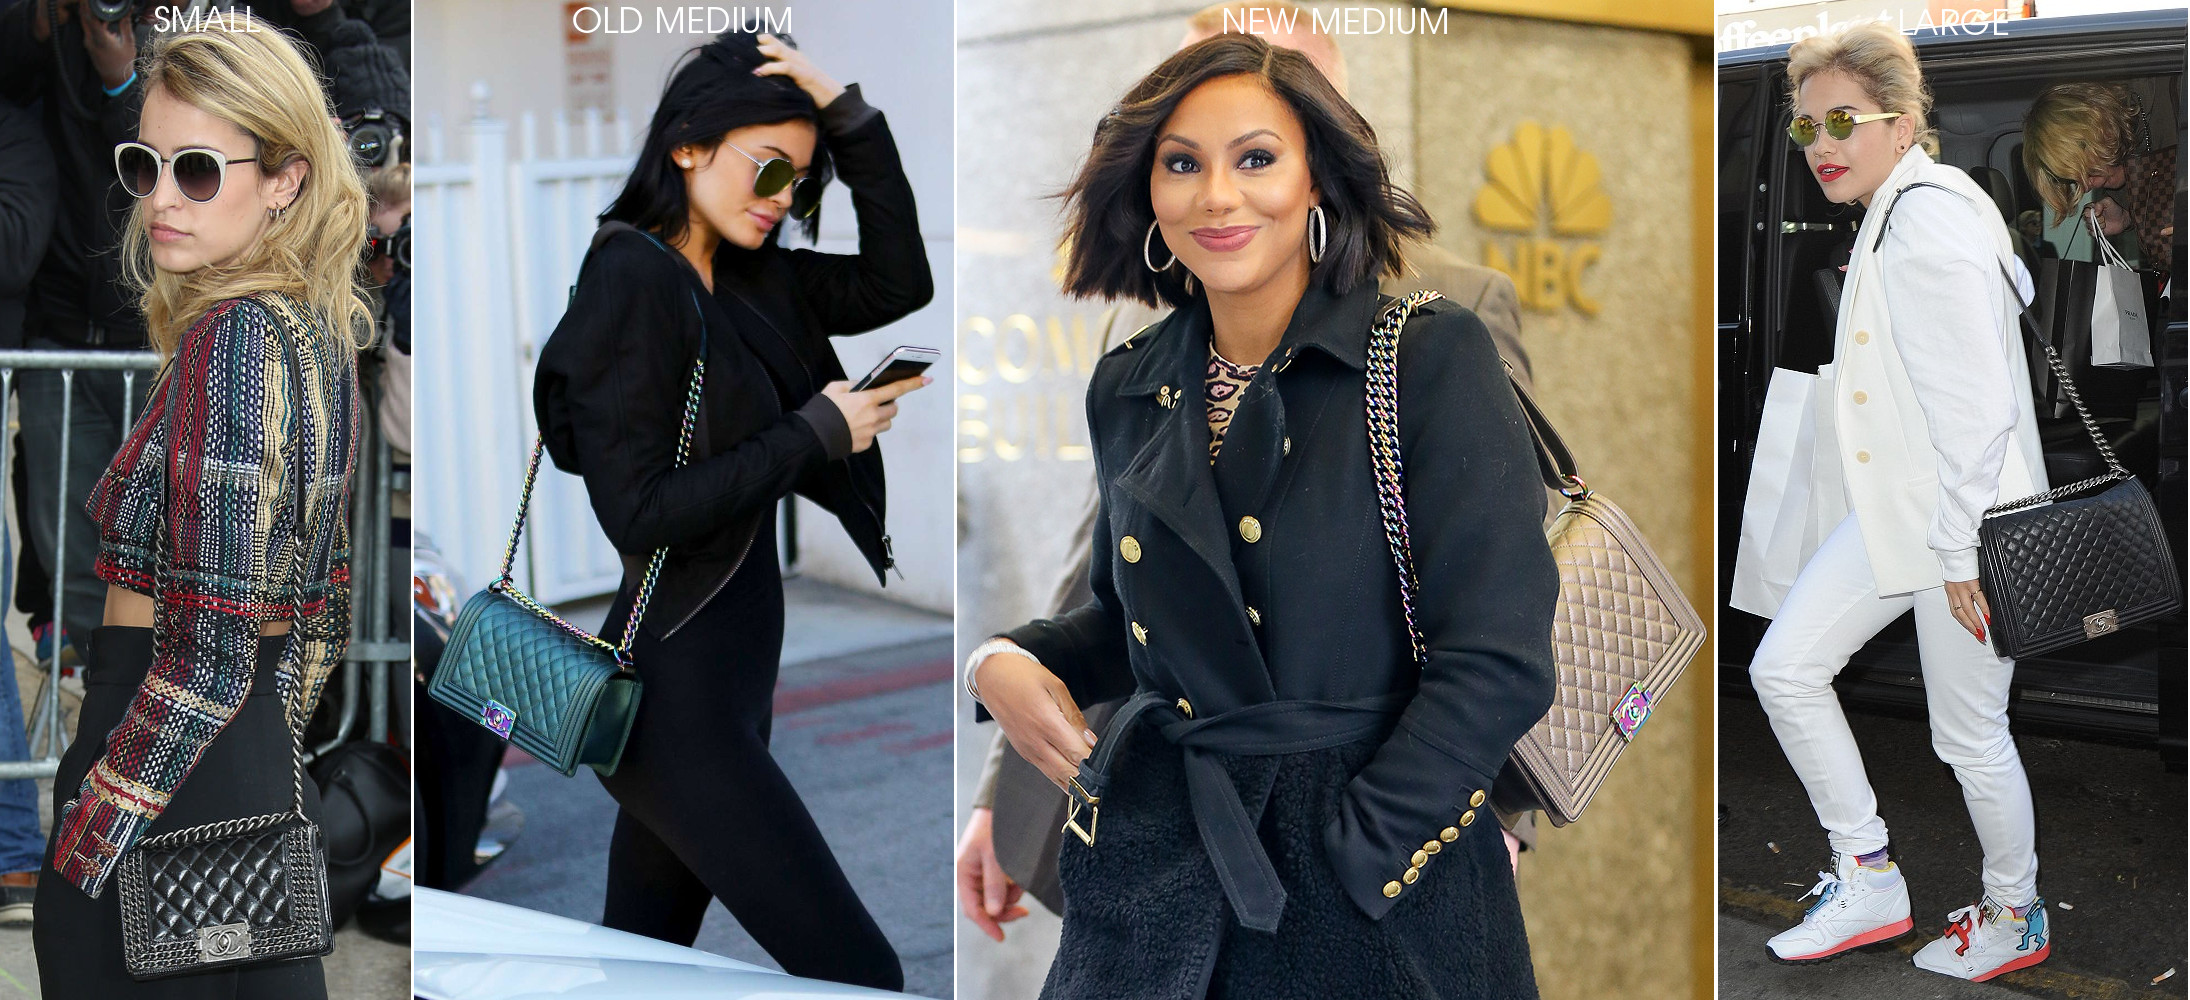 celebrities wearing chanel small old new medium large le boy flap bag comparison